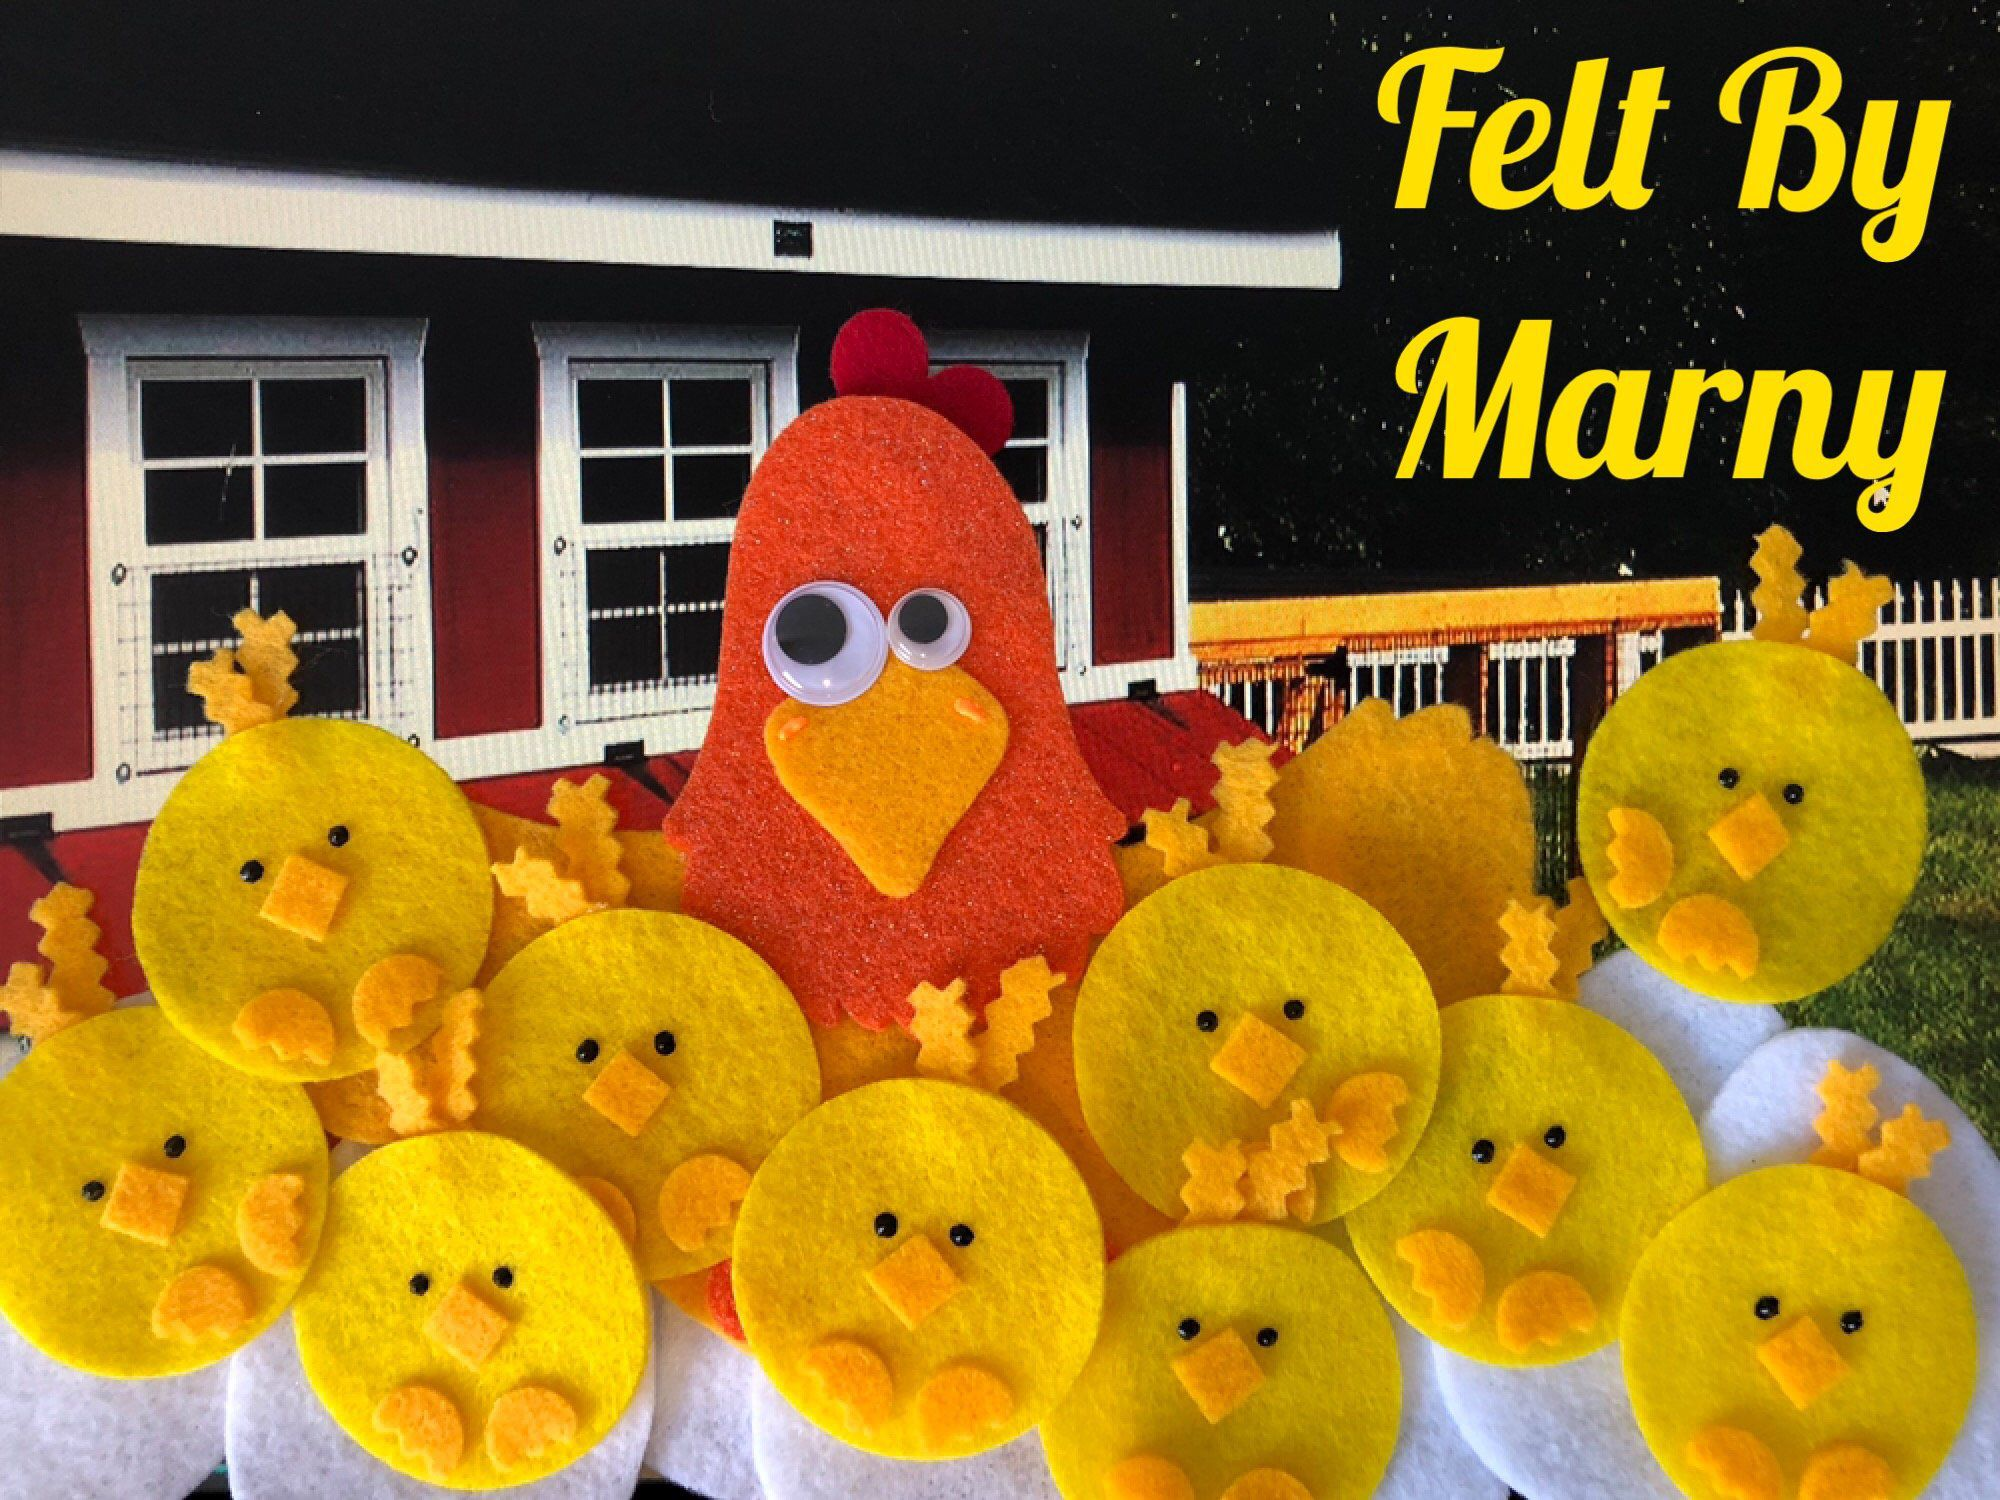 10 Little Chicks And Eggs Felt Board Story Circle Time